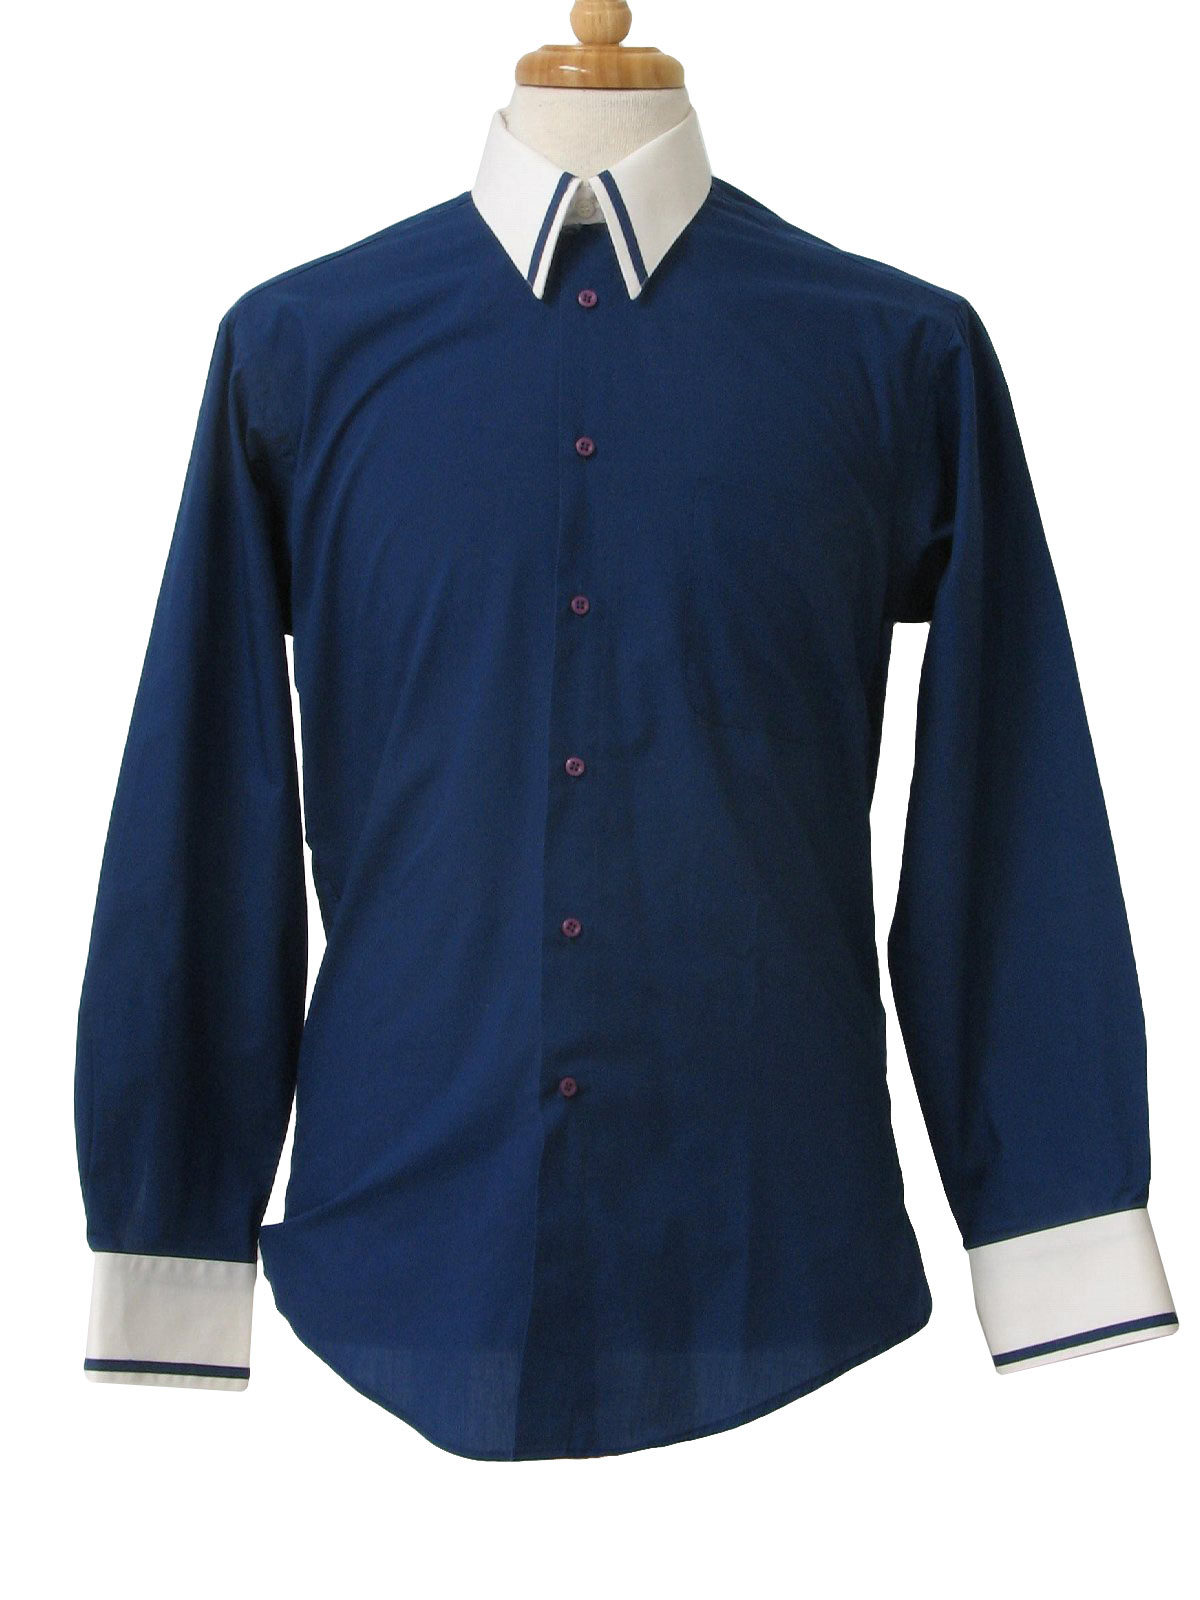 Mens Navy Blue Dress Shirt